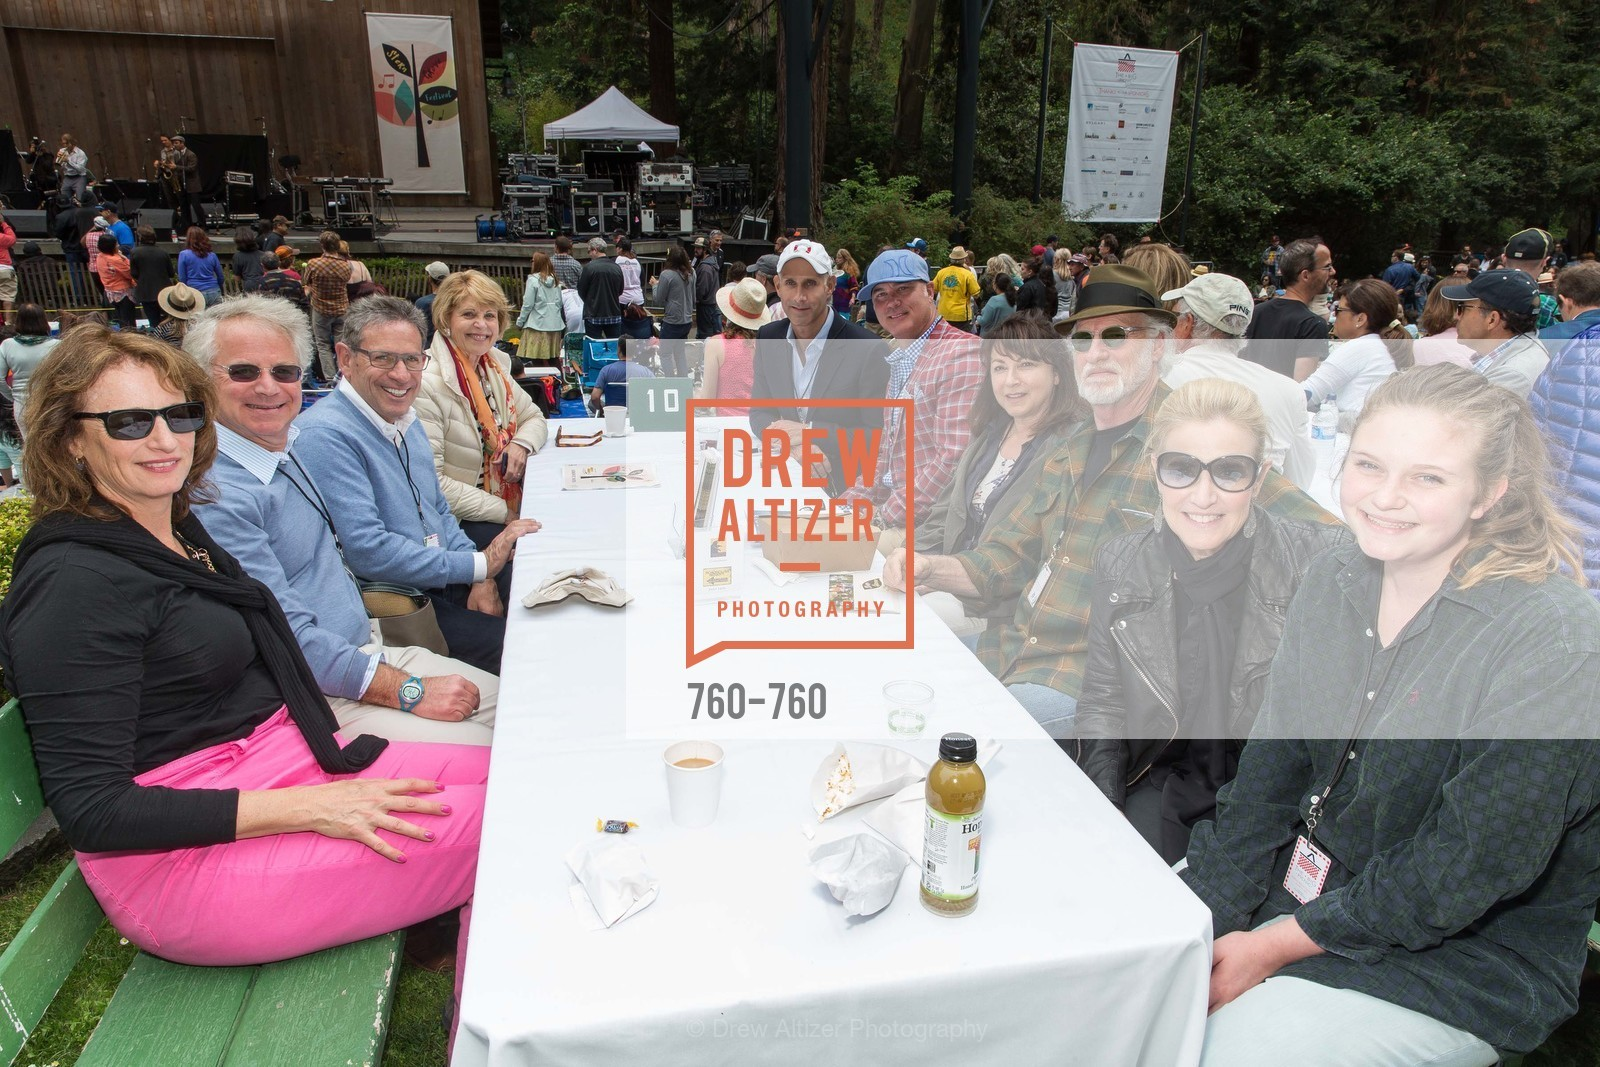 Gheo Schwabacher, Doug Wolf, Dagmar Dolby, Lino Cortina, Robert Fountain, Lisa Goldman, The Big Picnic! A Benefit & Concert for STERN GROVE FESTIVAL, US, June 14th, 2015,Drew Altizer, Drew Altizer Photography, full-service agency, private events, San Francisco photographer, photographer california